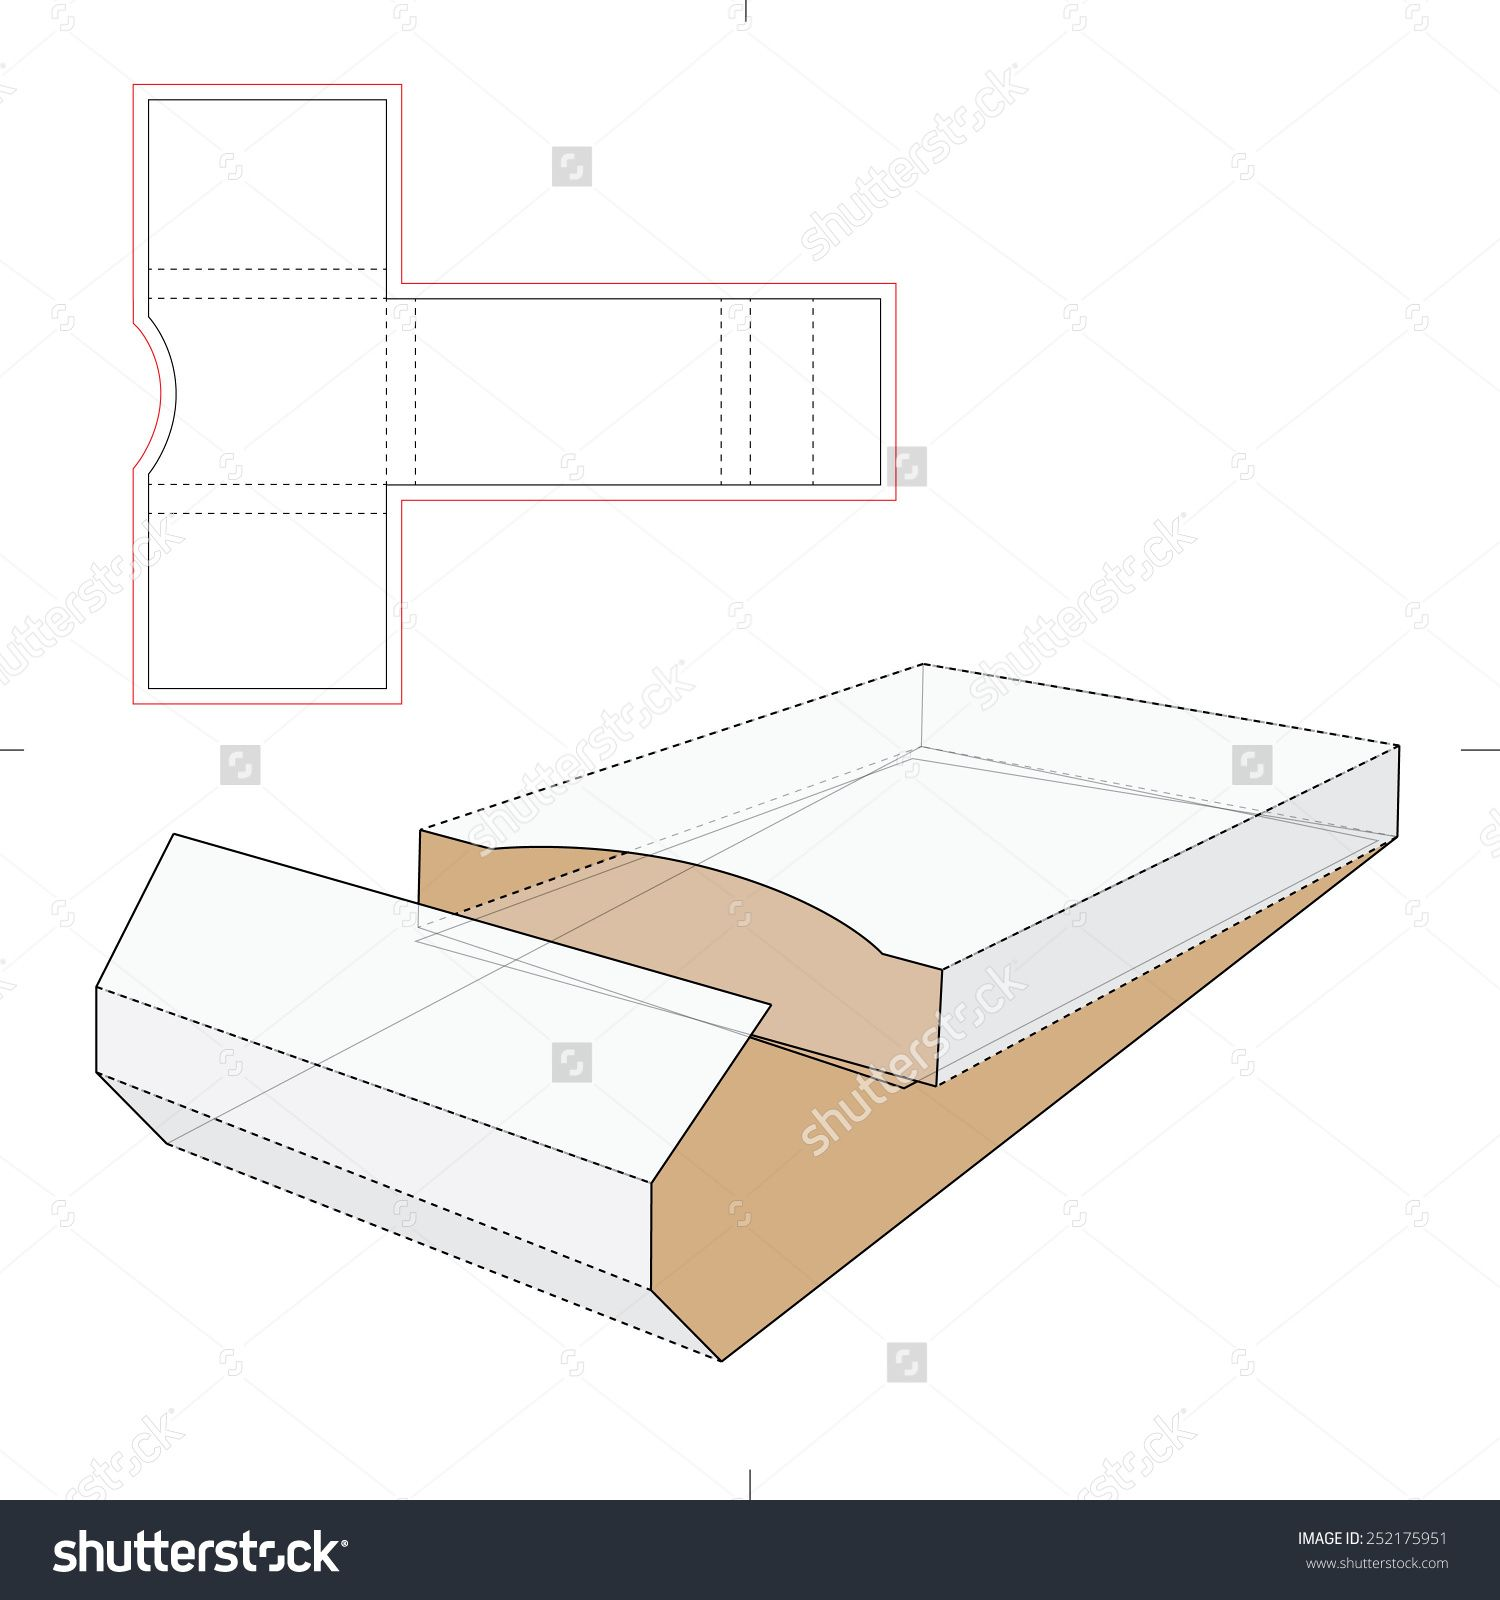 Business cards wrapping box with die cut template stock vector business cards wrapping box with die cut template stock vector illustration 252175951 shutterstock magicingreecefo Images